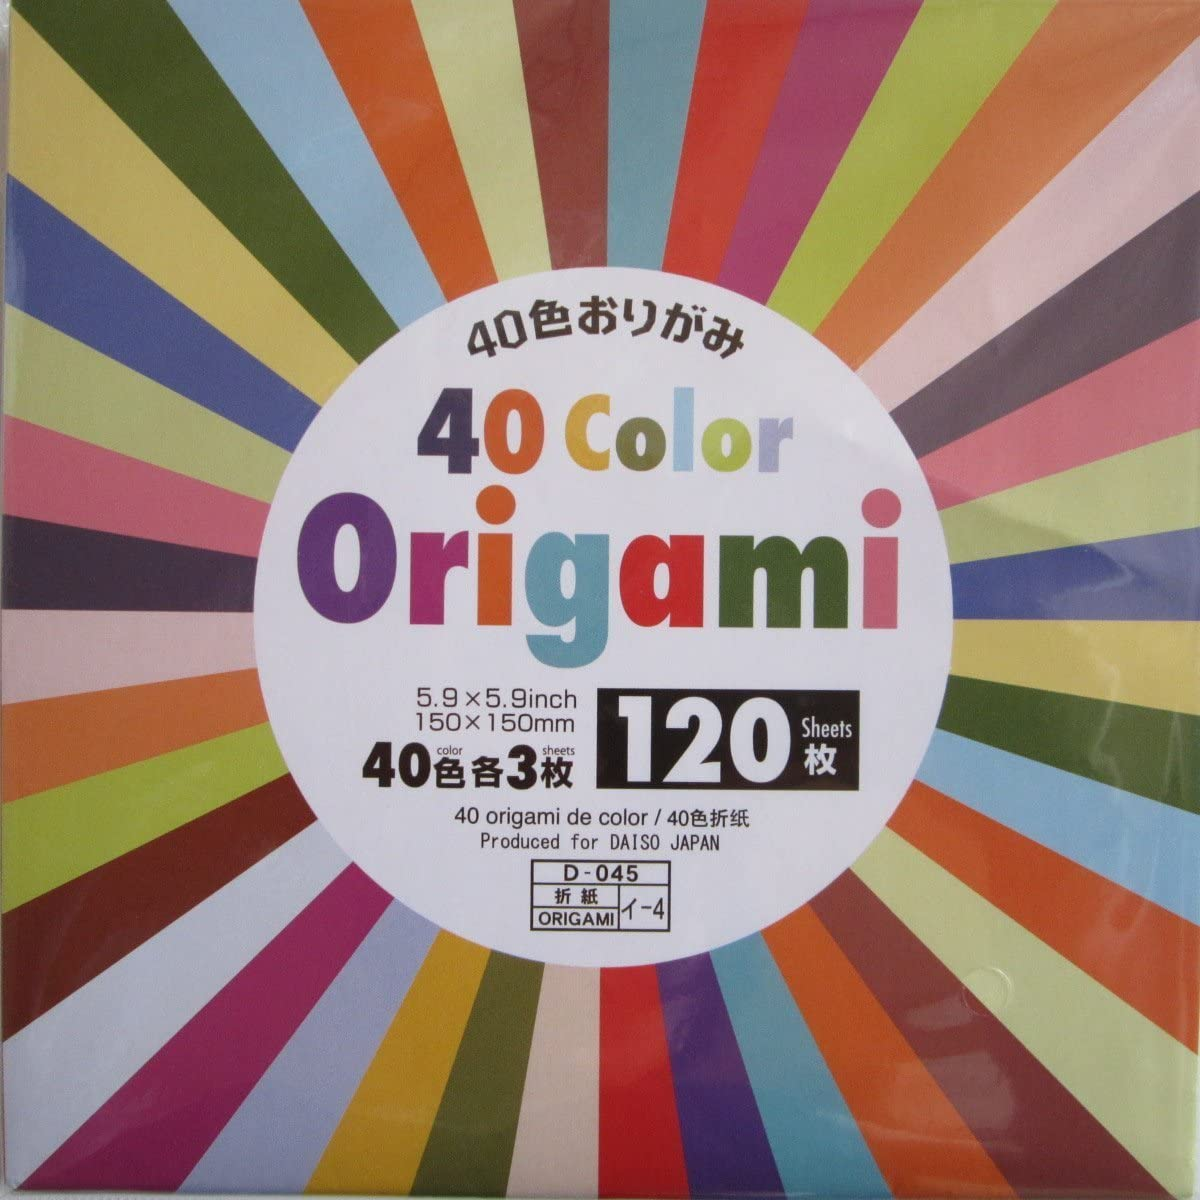 40 Color Origami - 120 Sheets : Origami Paper : Office Products